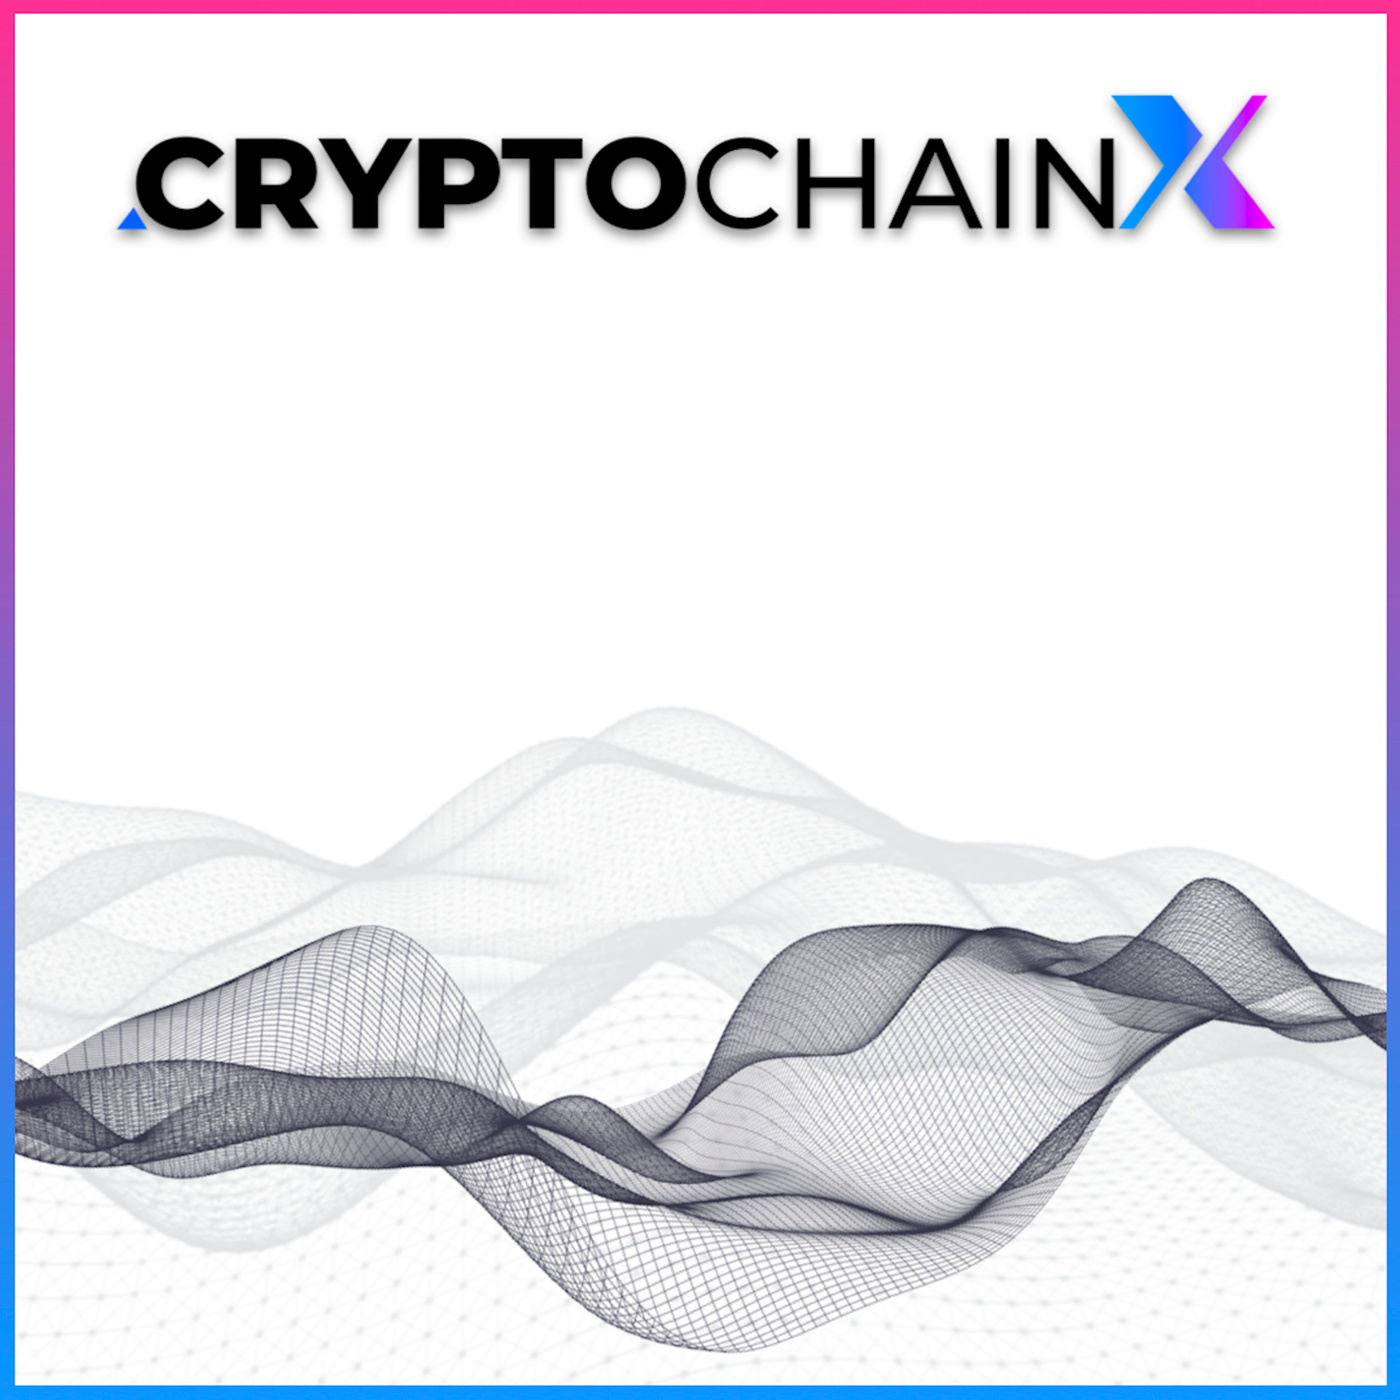 CCX009 - Altcoins, Nodes, Fork, Wallets and more Blockchain & Crypto Terminology